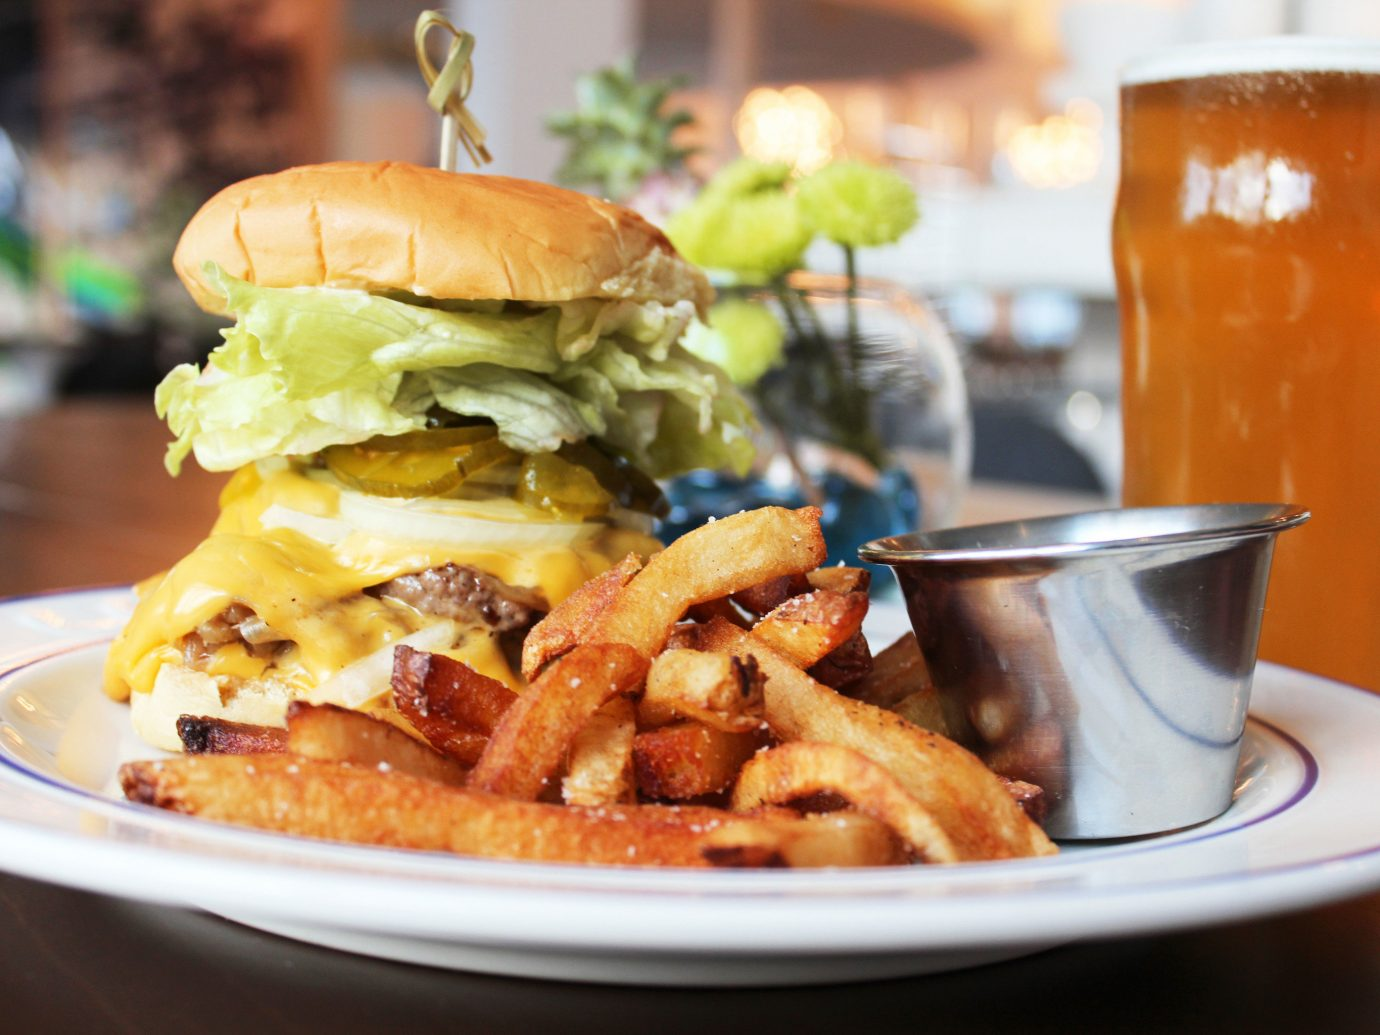 Trip Ideas table food plate cup dish hamburger meal indoor restaurant breakfast lunch french fries brunch Drink produce meat junk food sandwich fast food snack food close